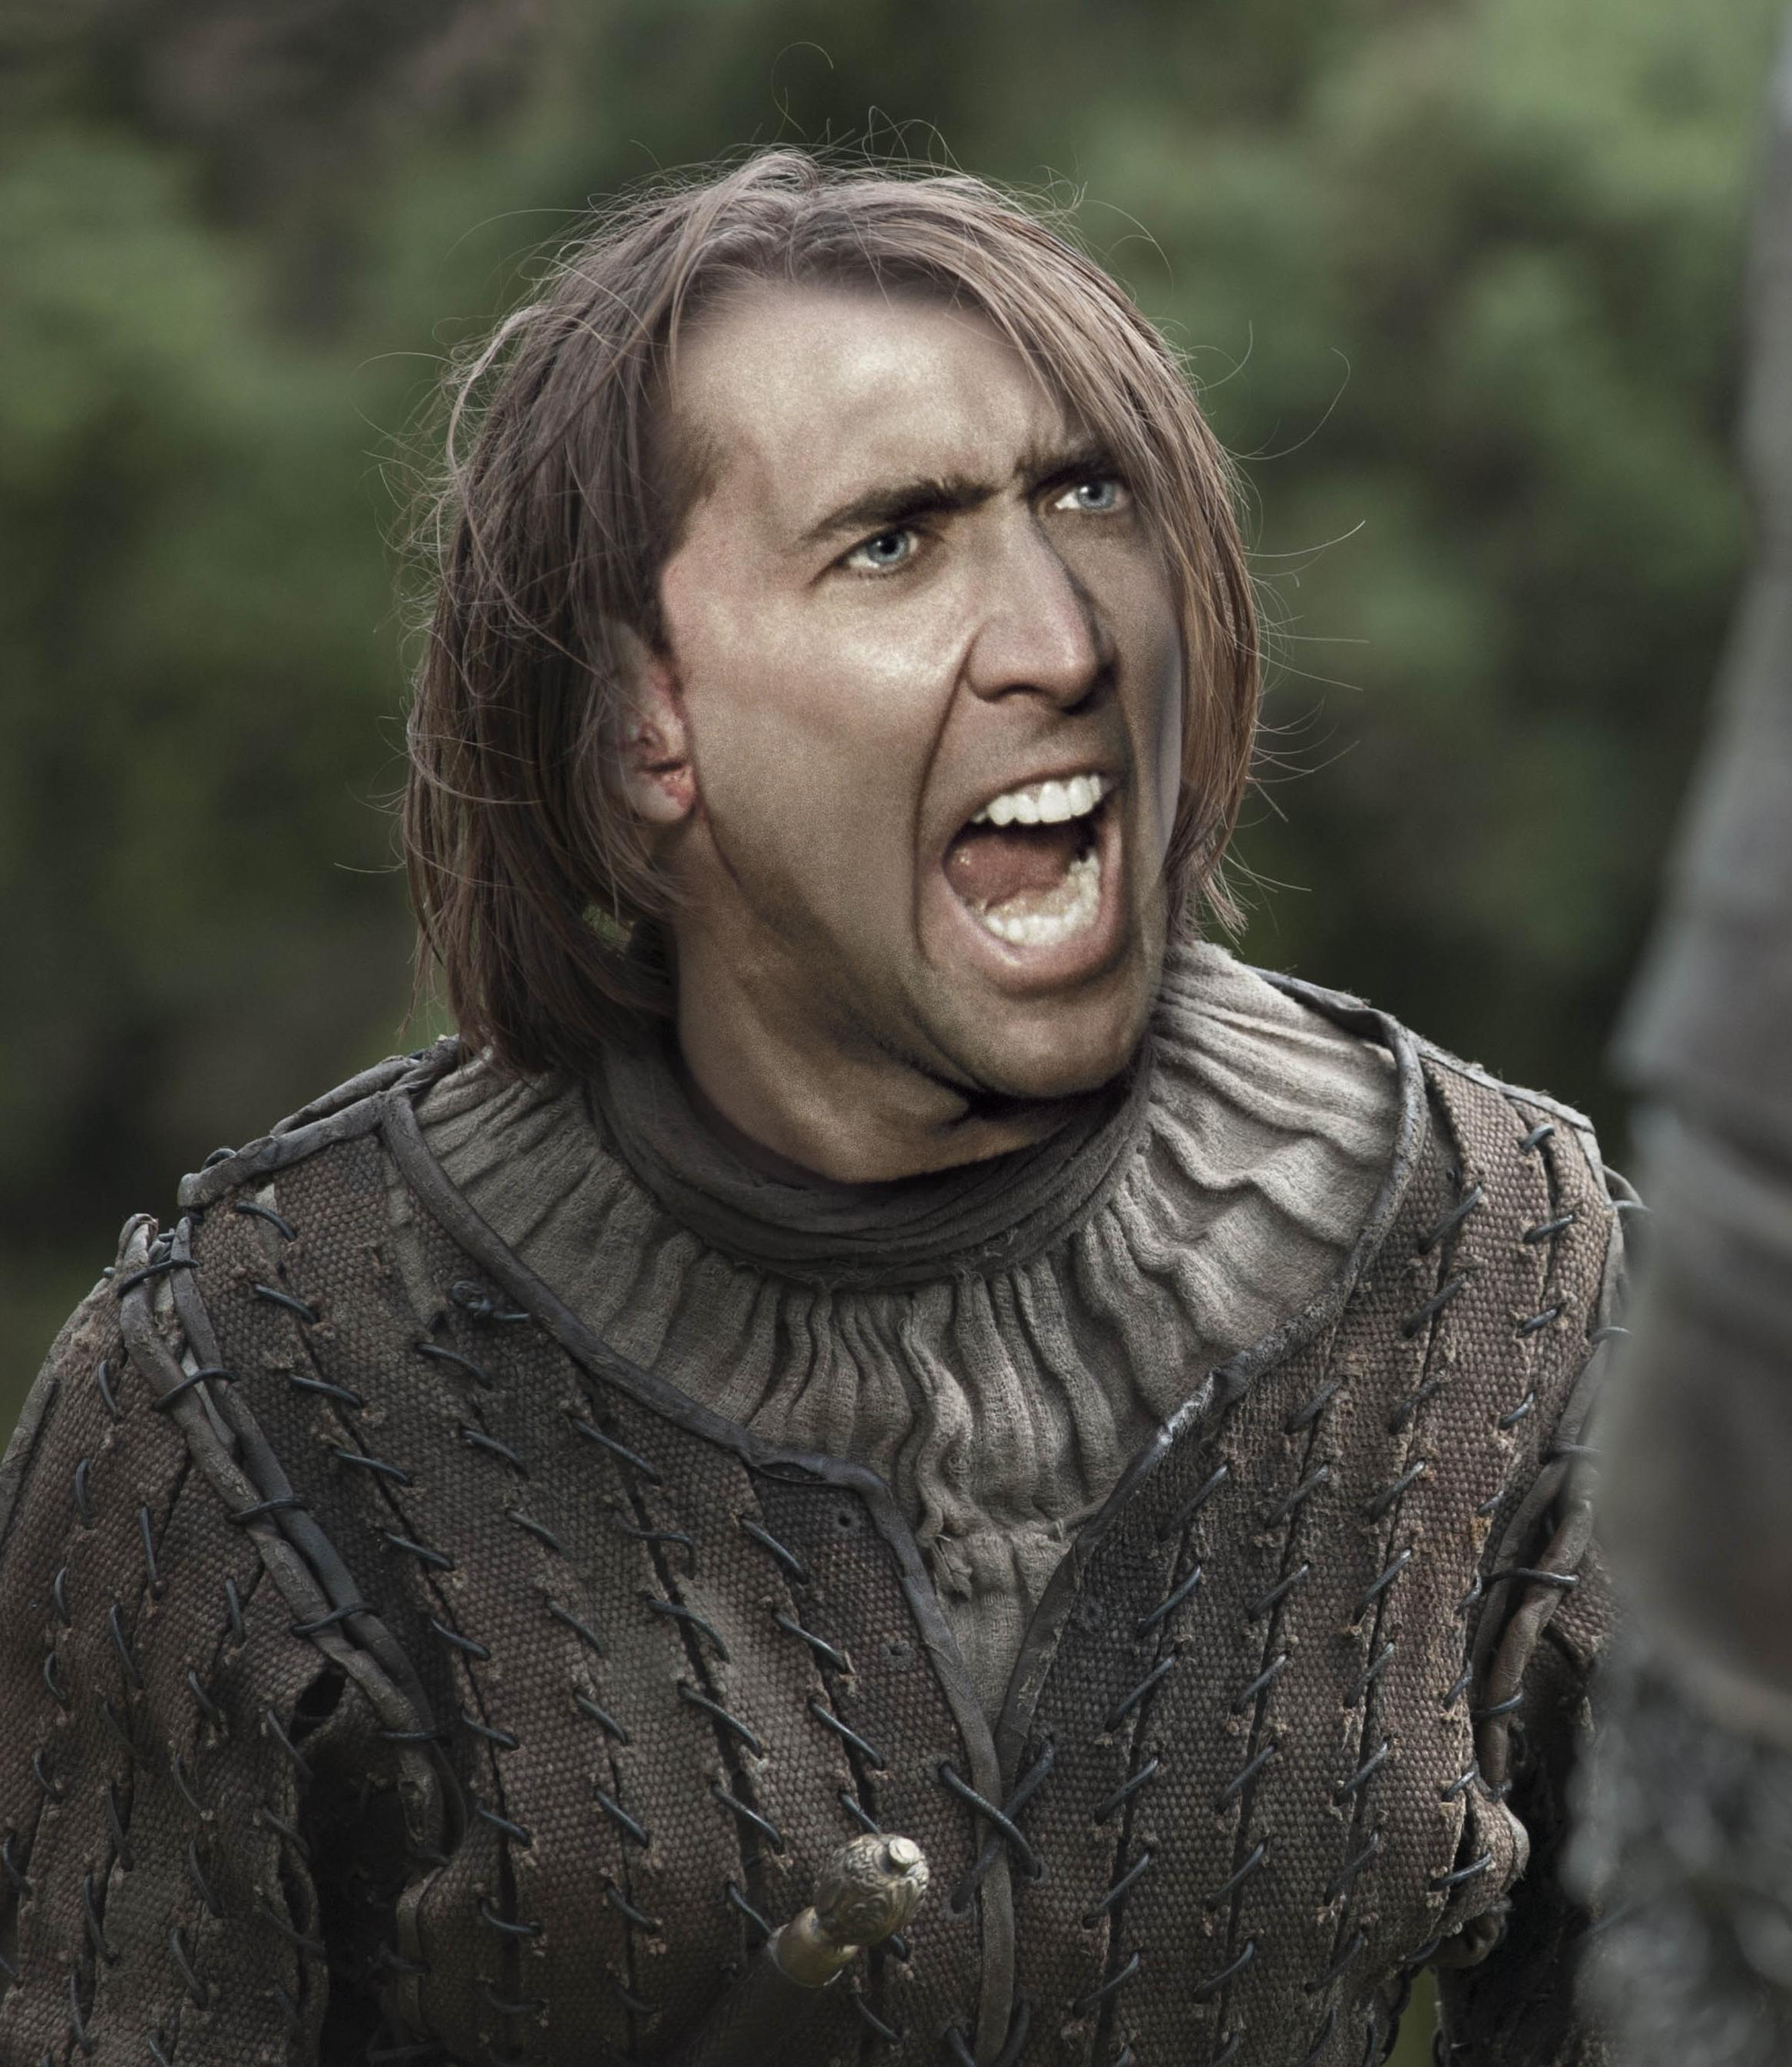 Nicolas Cage As Every Game Of Thrones Character Is Glorious cage of thrones 8